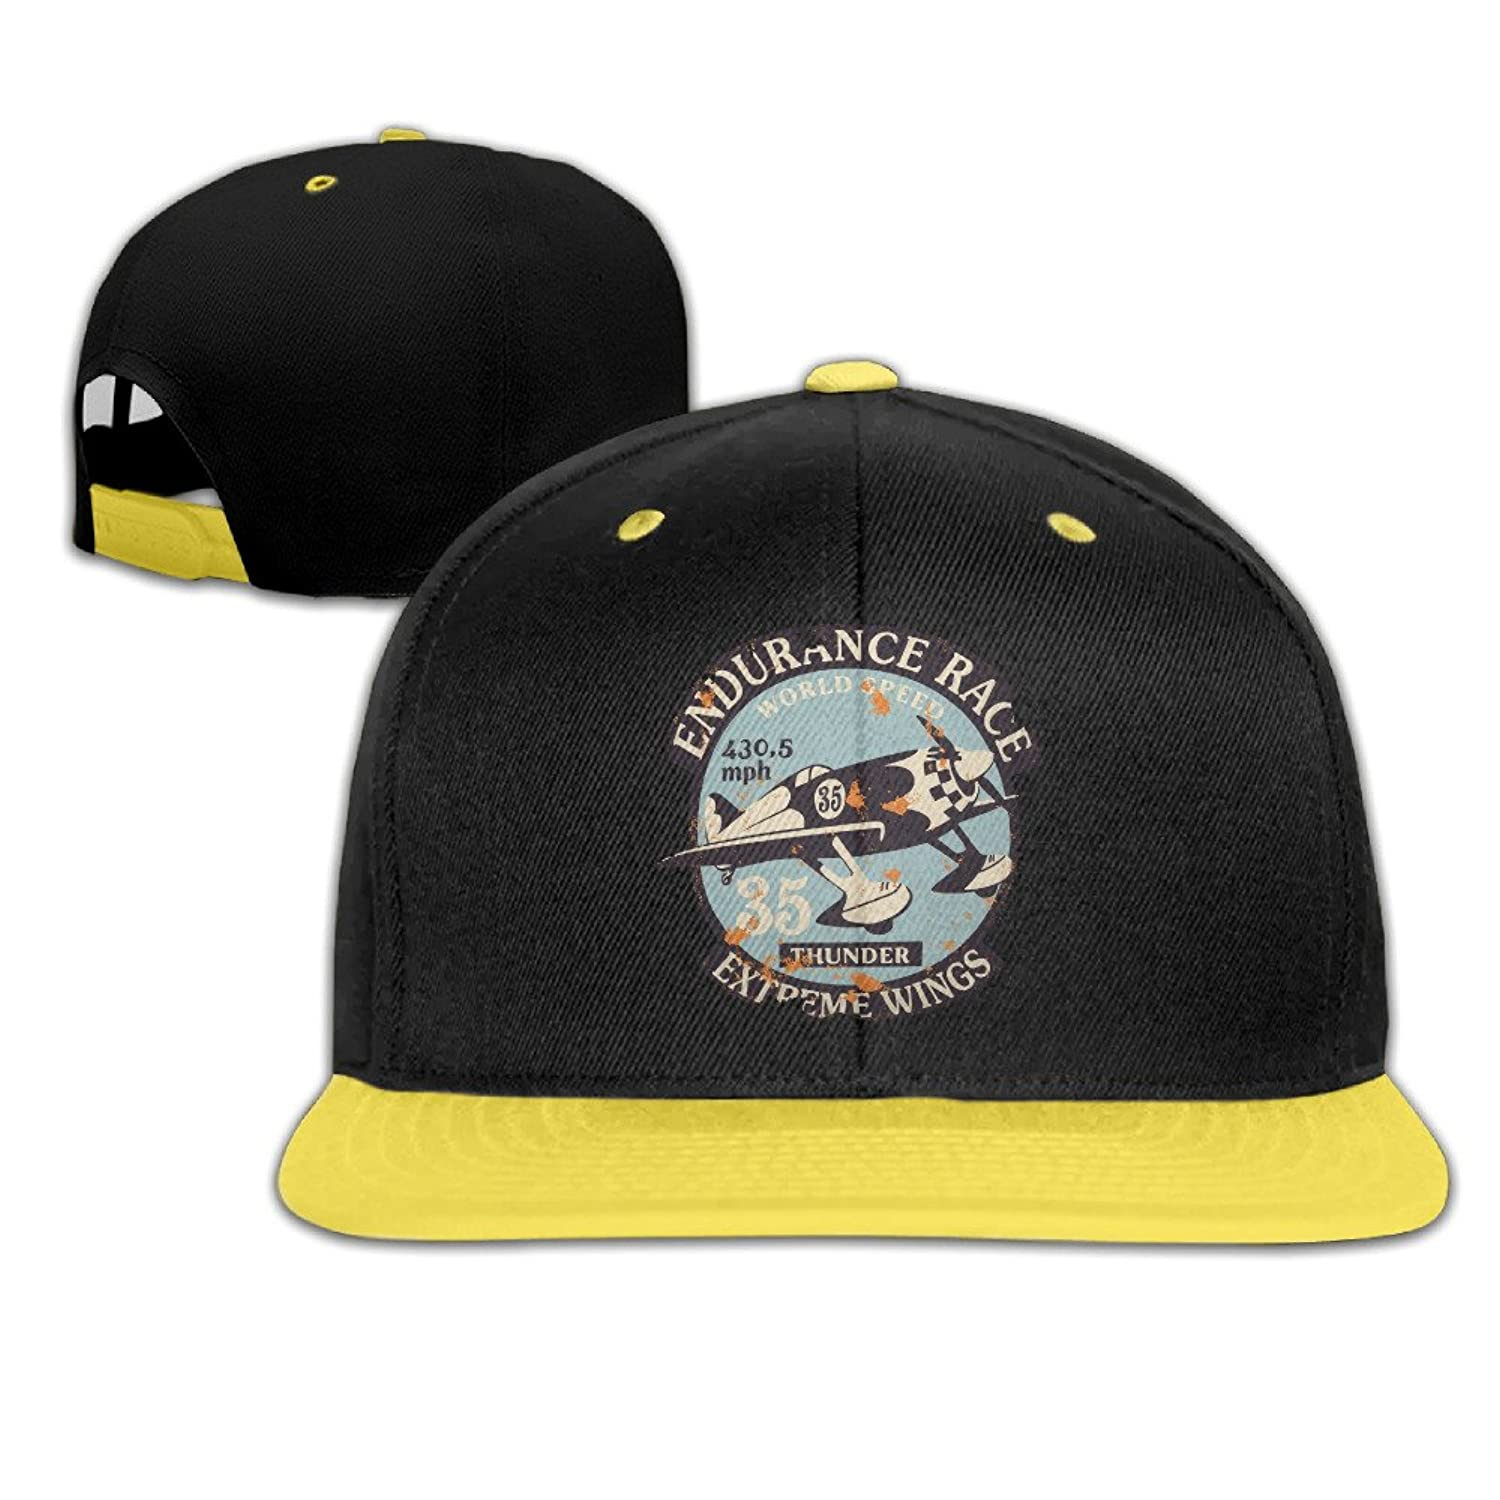 Child's Fitted Caps Air Racing Adjustable Snap Hat